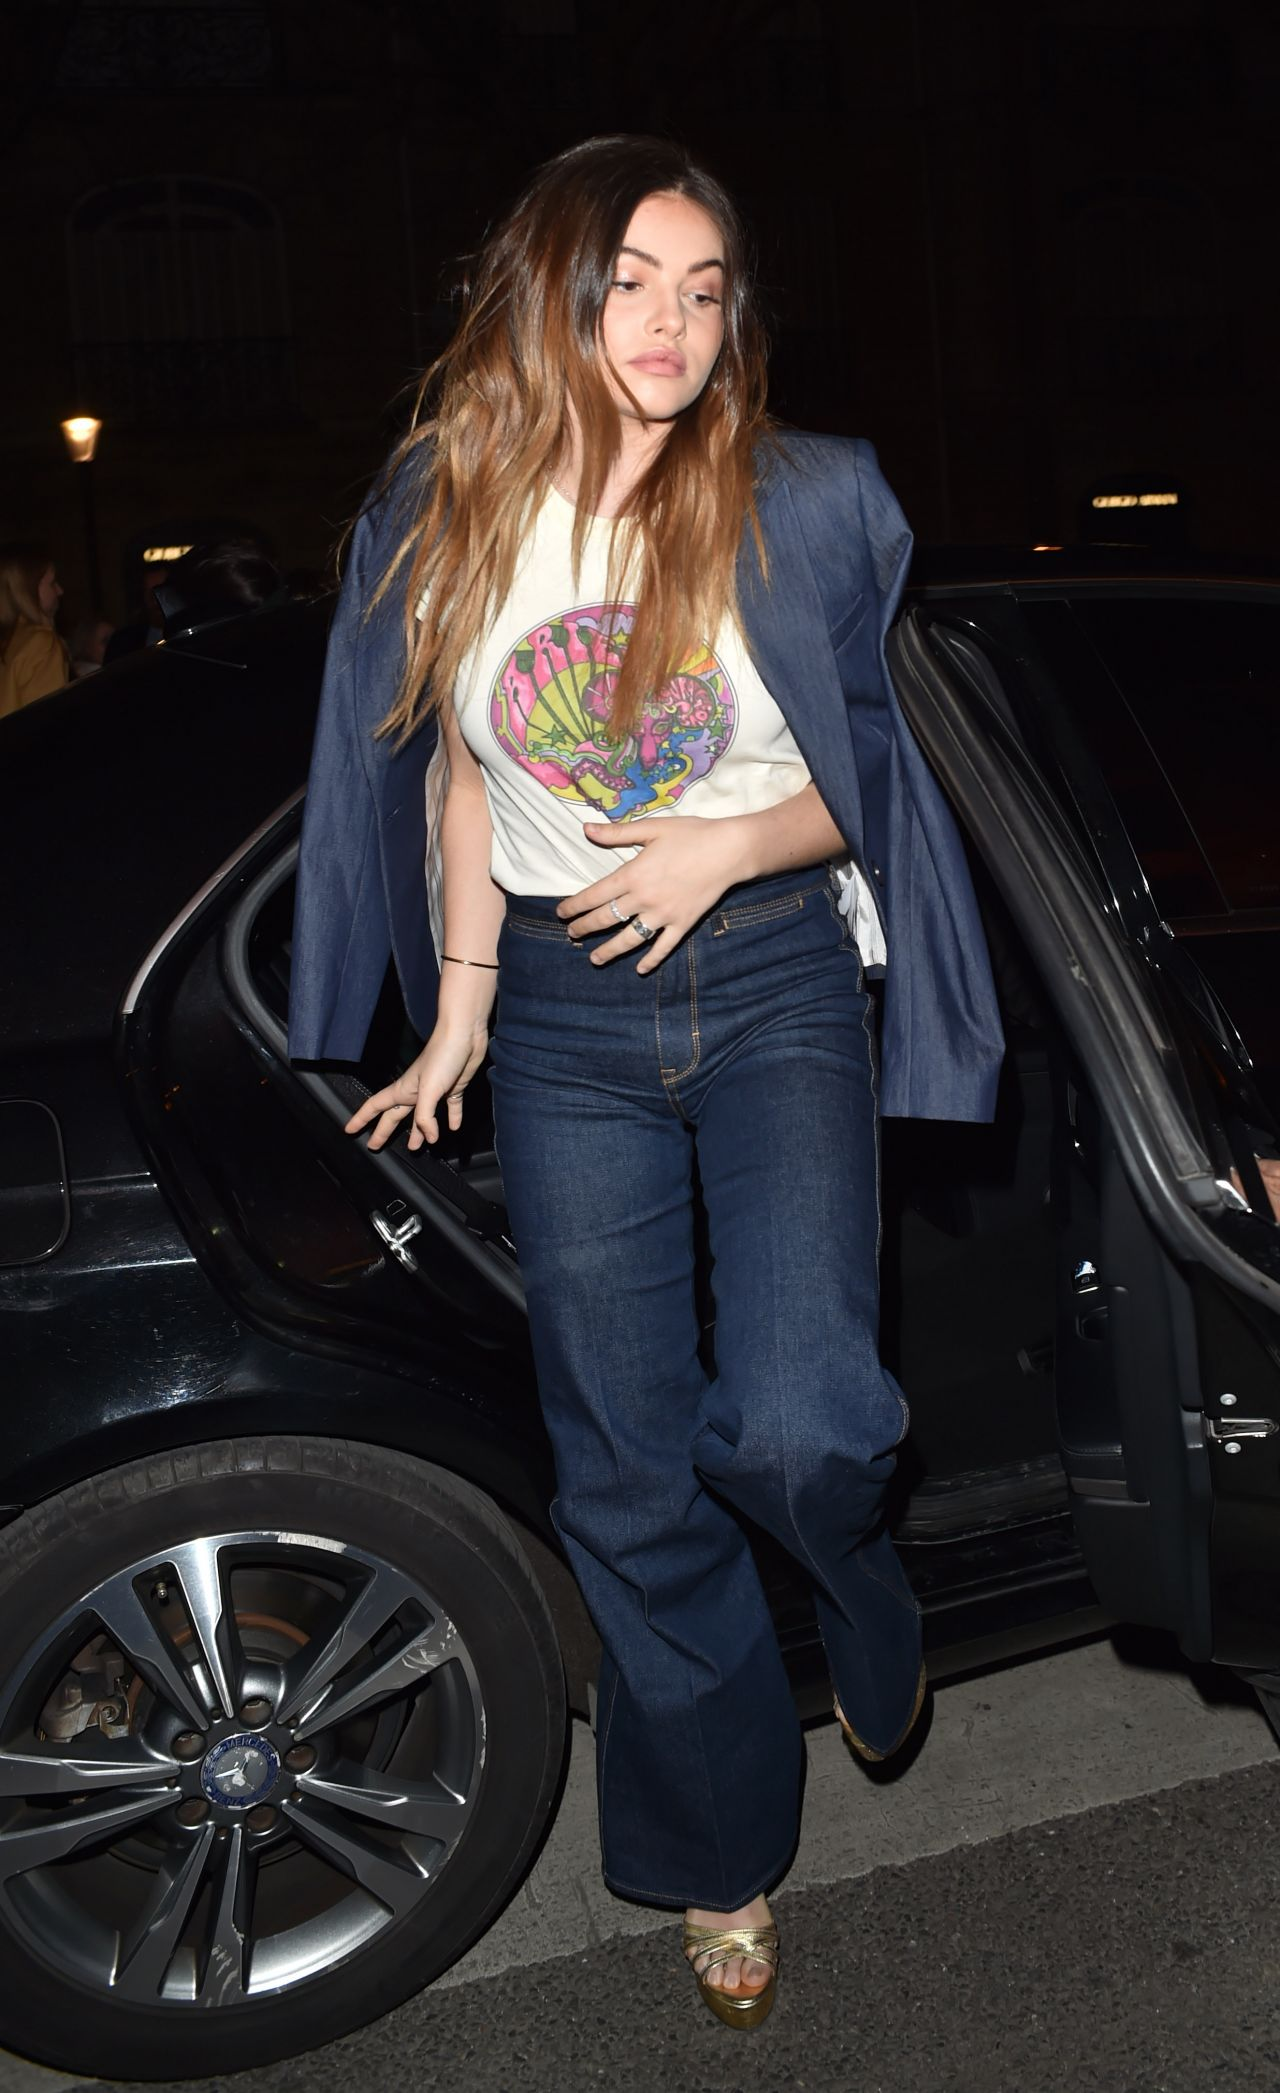 f961a16e Thylane Blondeau - Arriving at the Tommy Hilfiger Fashion Show in Paris 03/ 02/2019